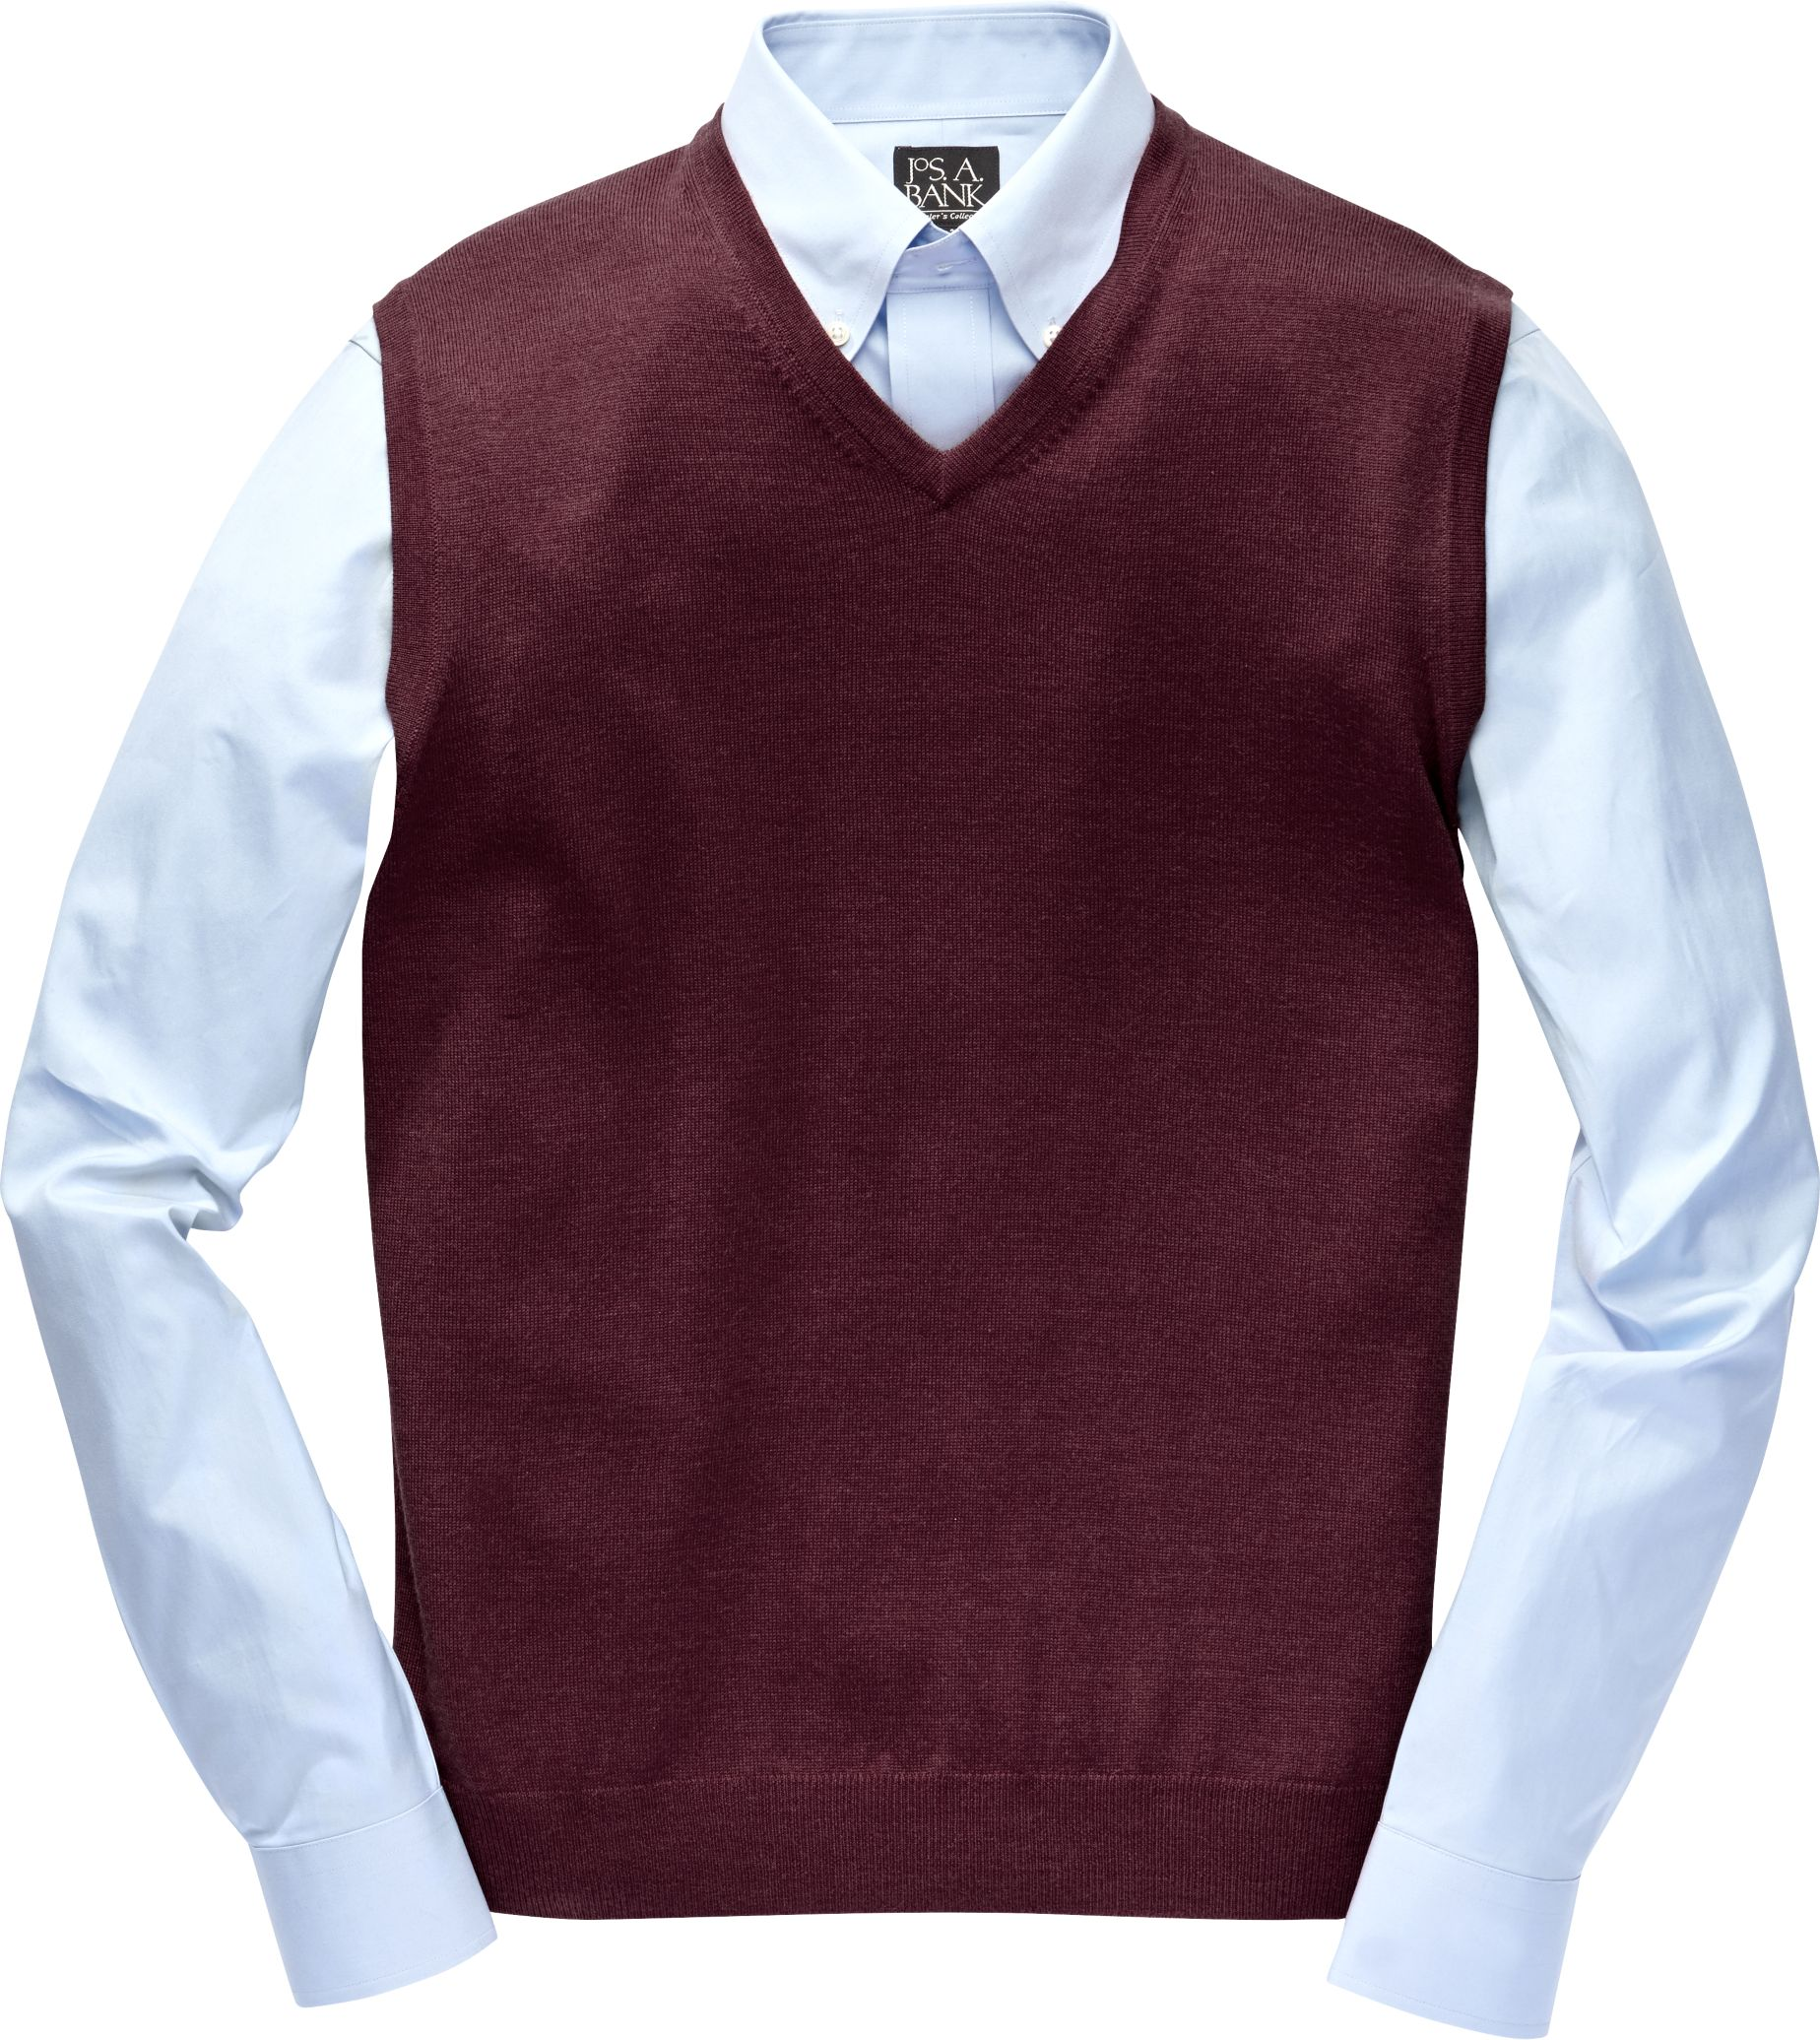 Sweater Vests | Men's Sweaters | JoS. A. Bank Clothiers